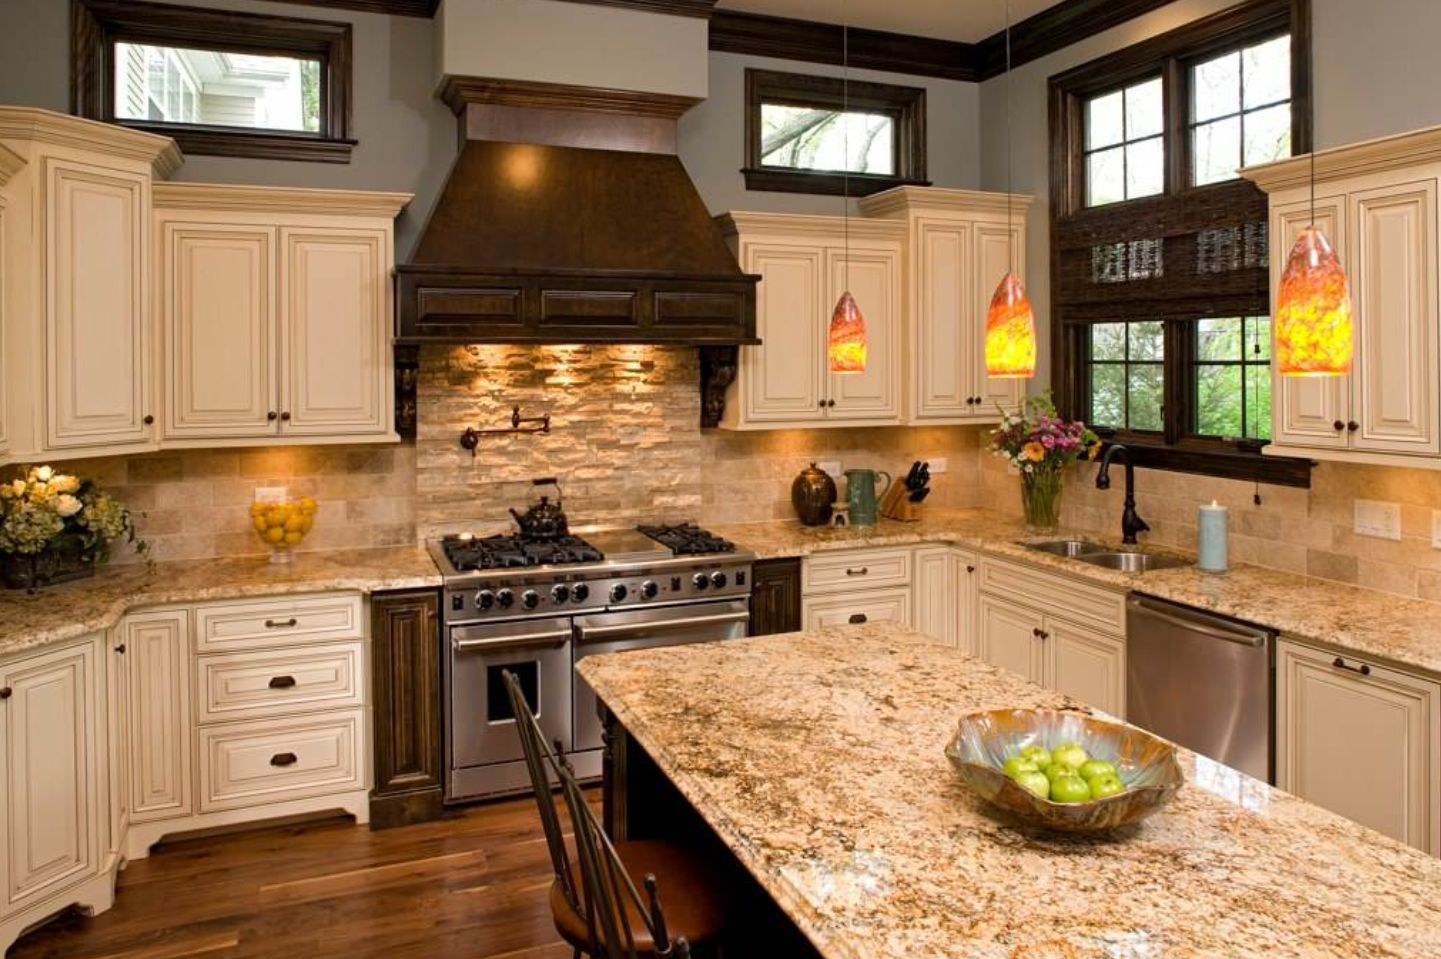 kitchen backsplash designs travertine travertine backsplash ideas for nostalgic kitchen designs 796